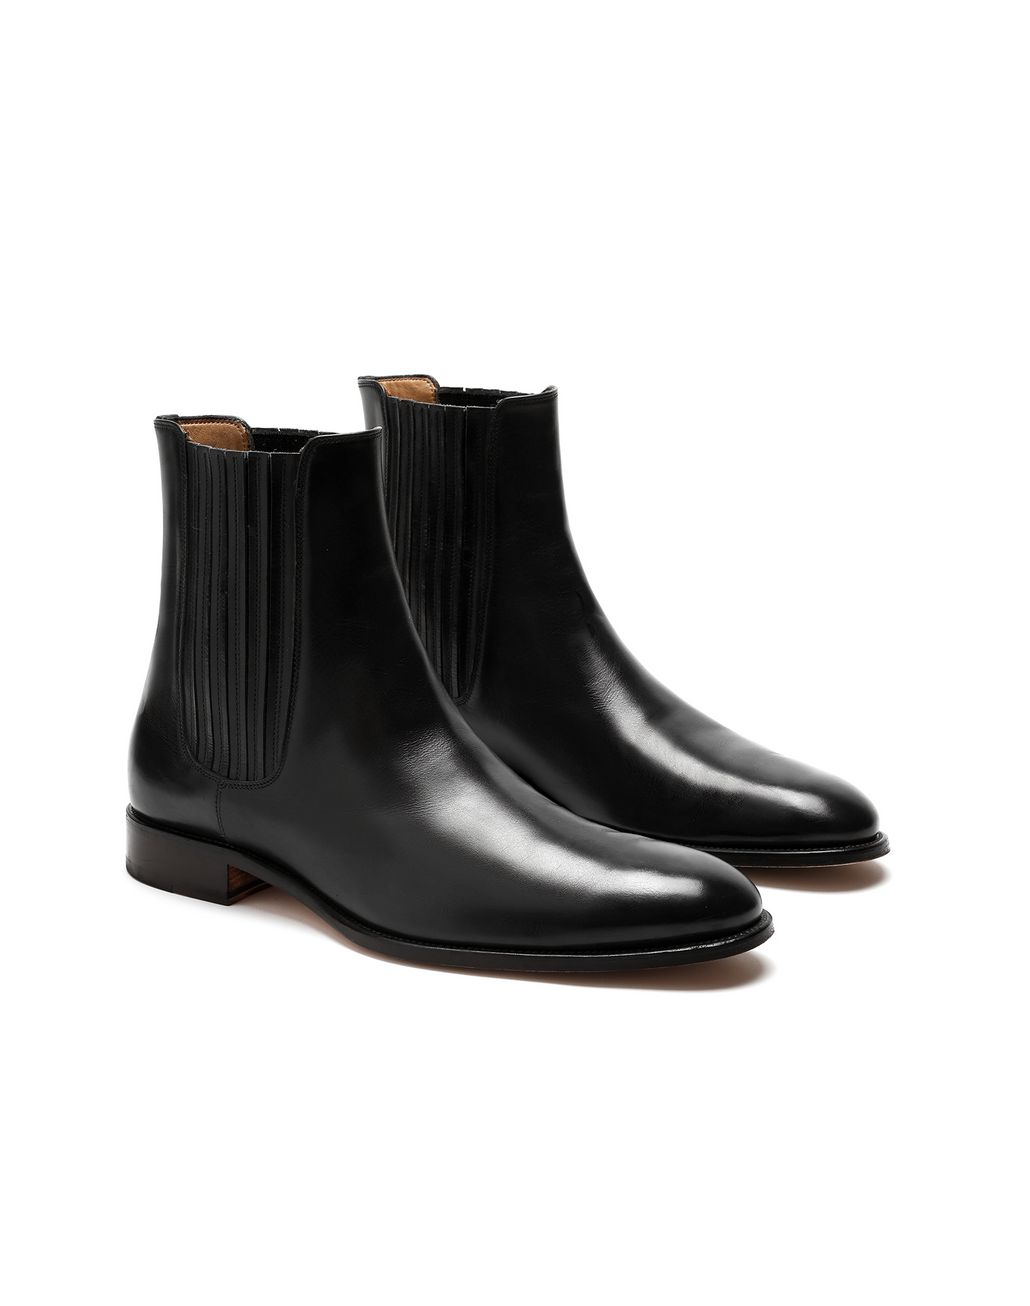 BRIONI Bottine Chelsea noire Chaussures ville [*** pickupInStoreShippingNotGuaranteed_info ***] d